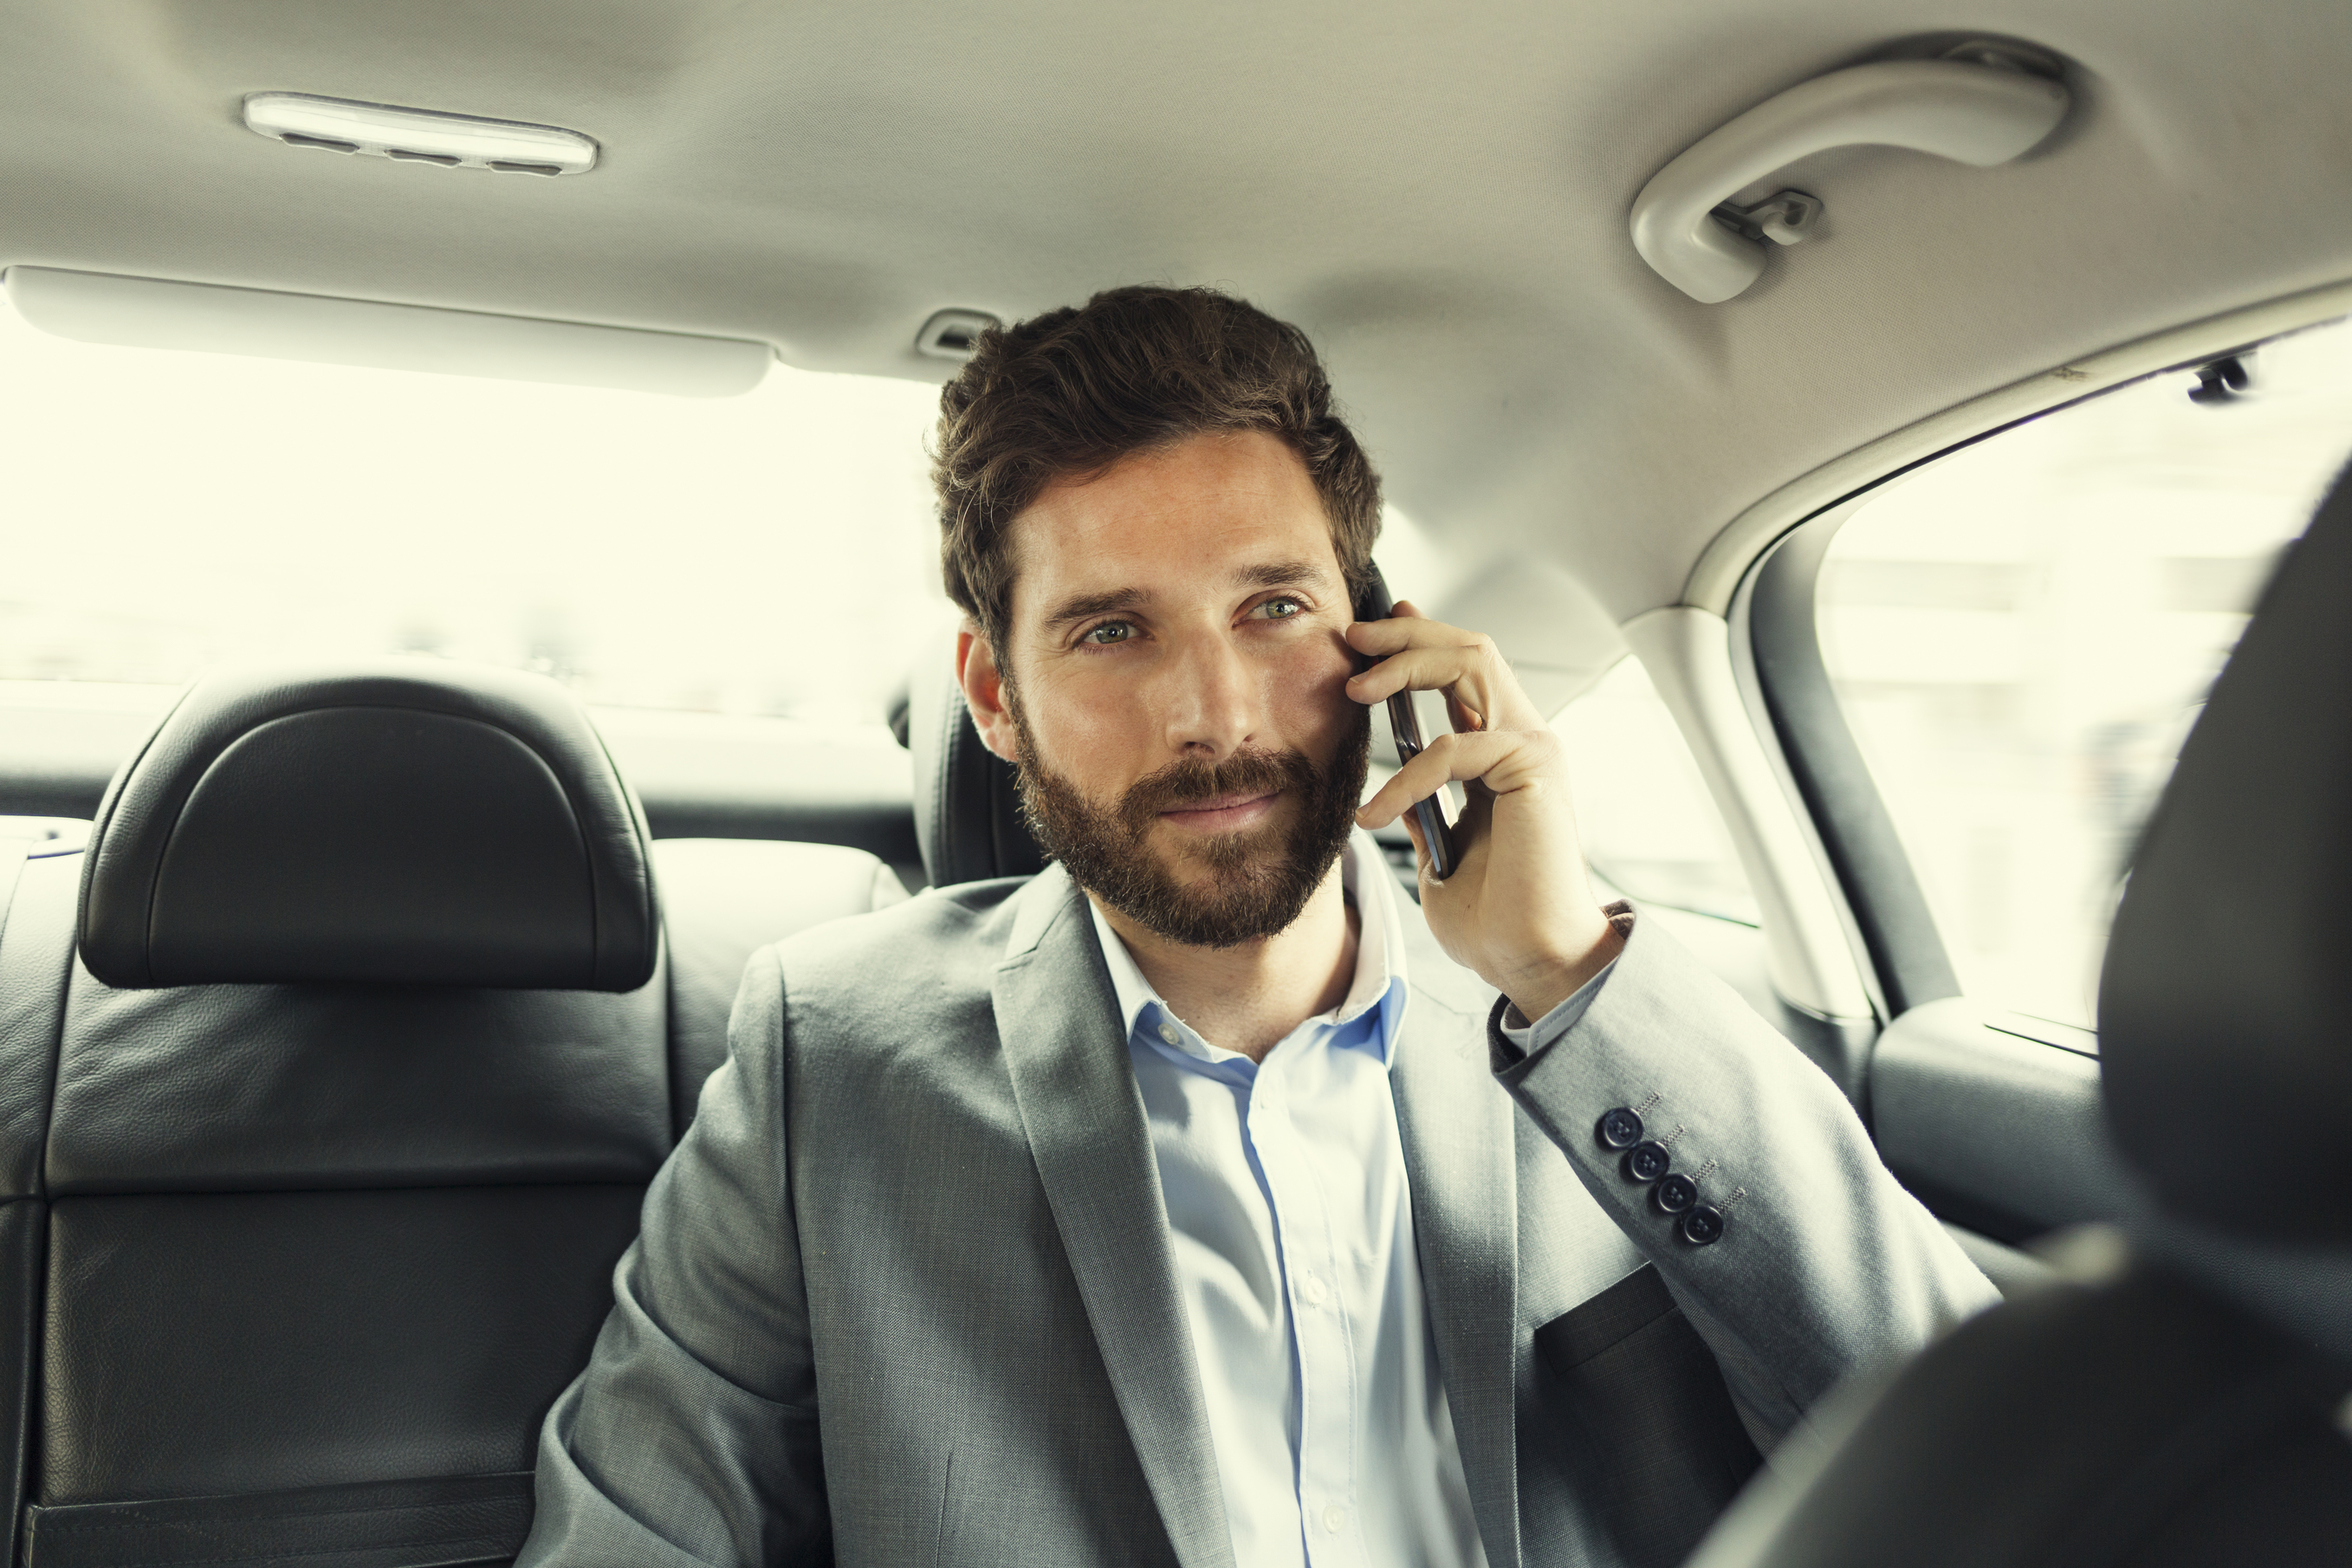 Casual business man on mobile phone in rear of car